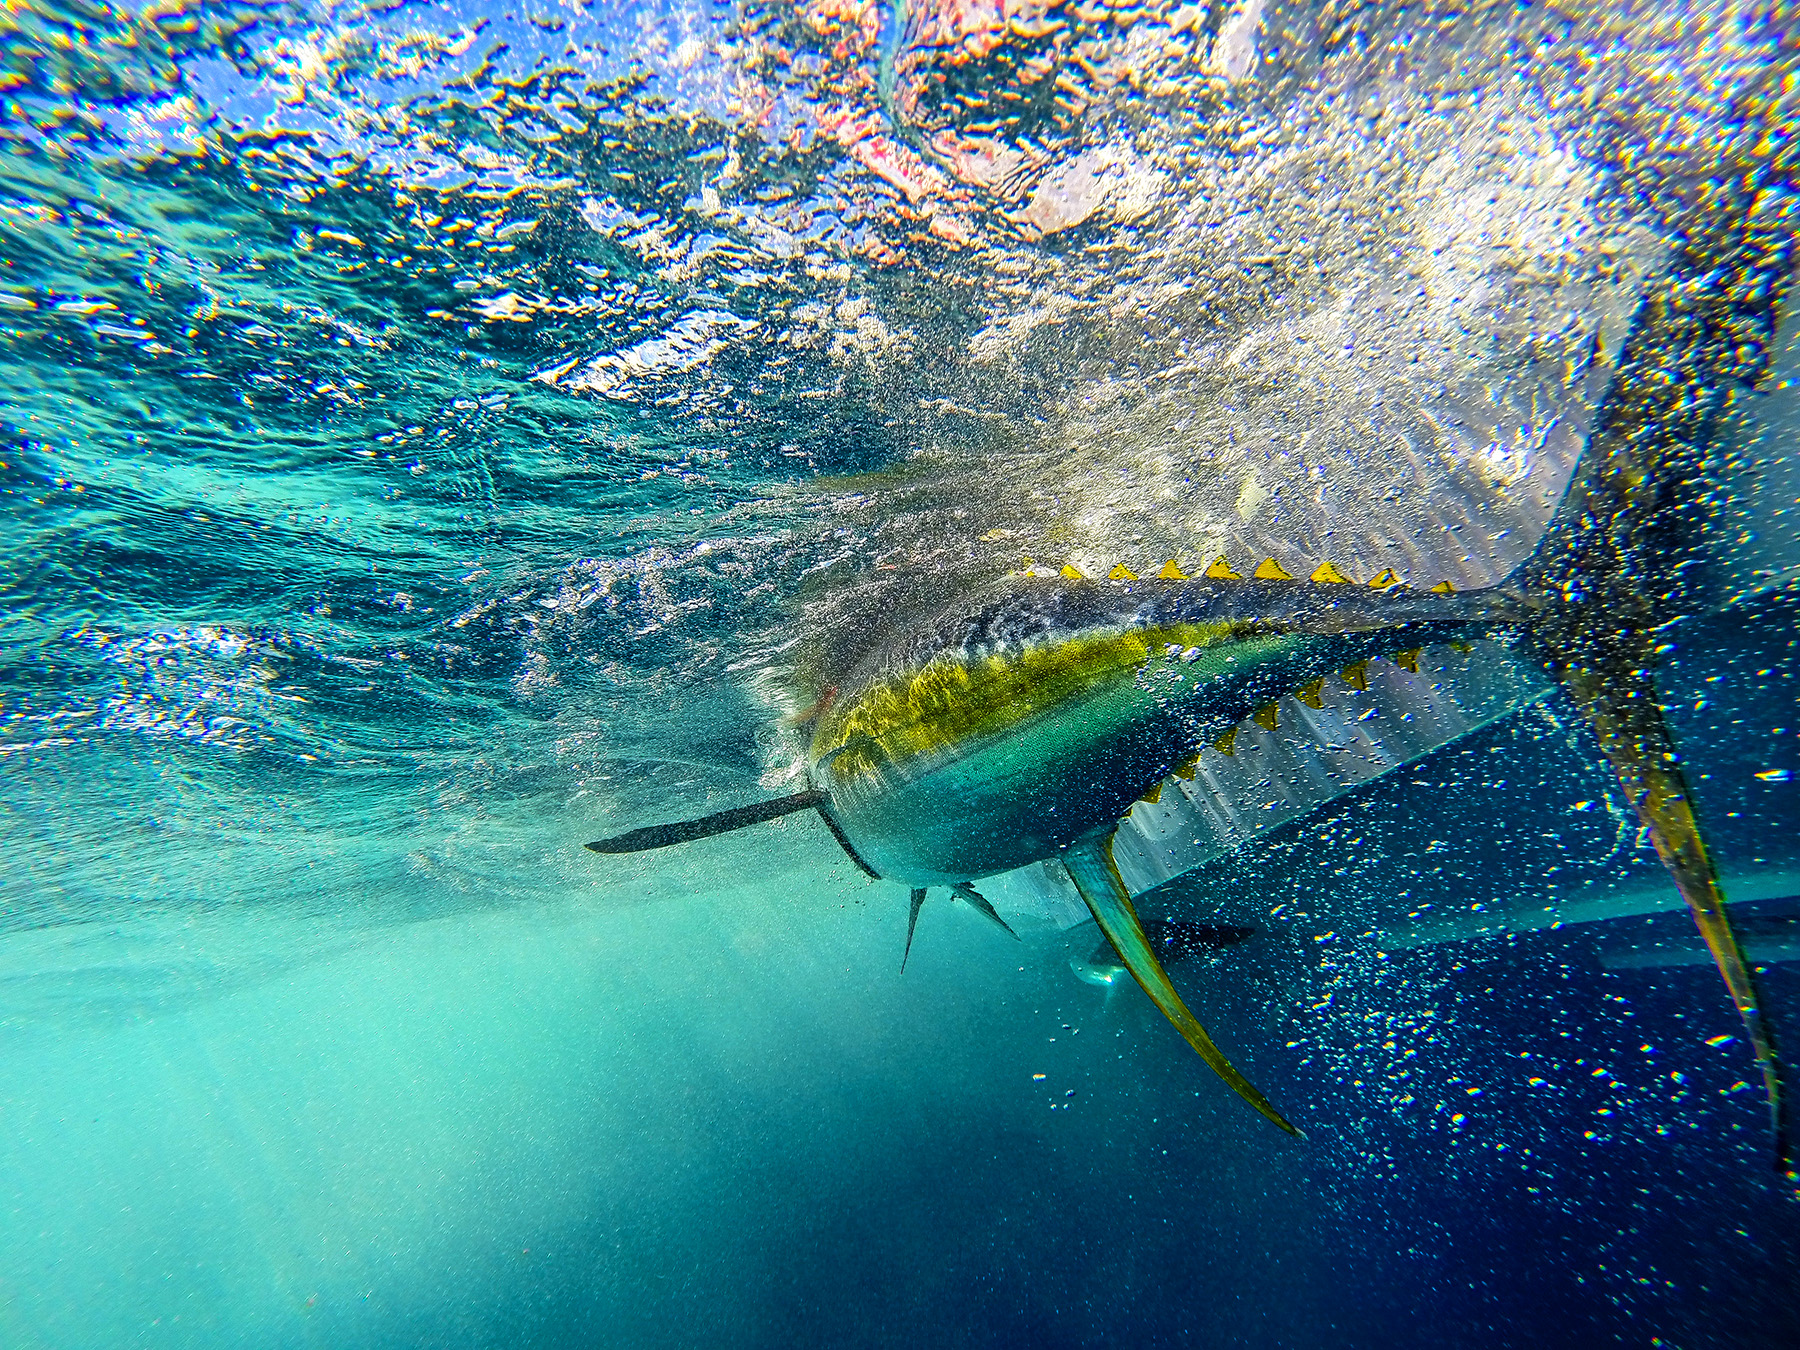 big-yellowfin-tuna-underwater-deep-sea-fishing-louisiana-into-the-blue